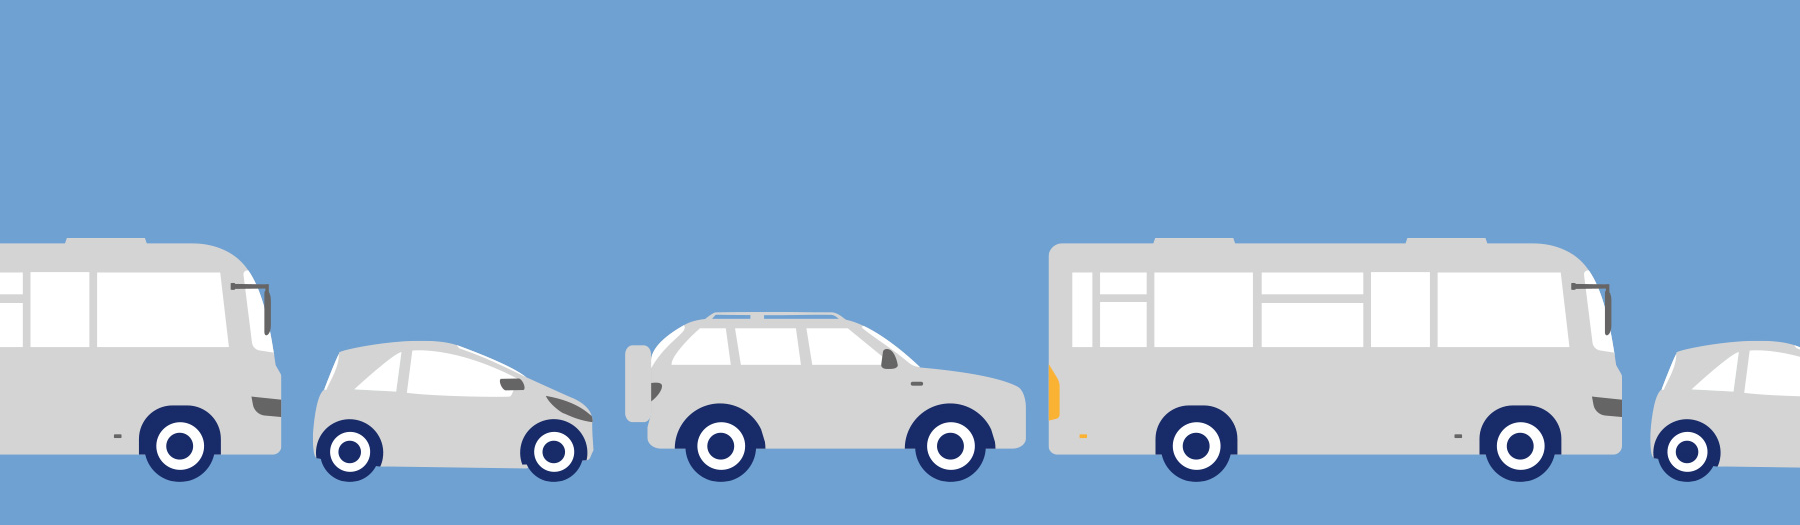 Illustration of cars and buses